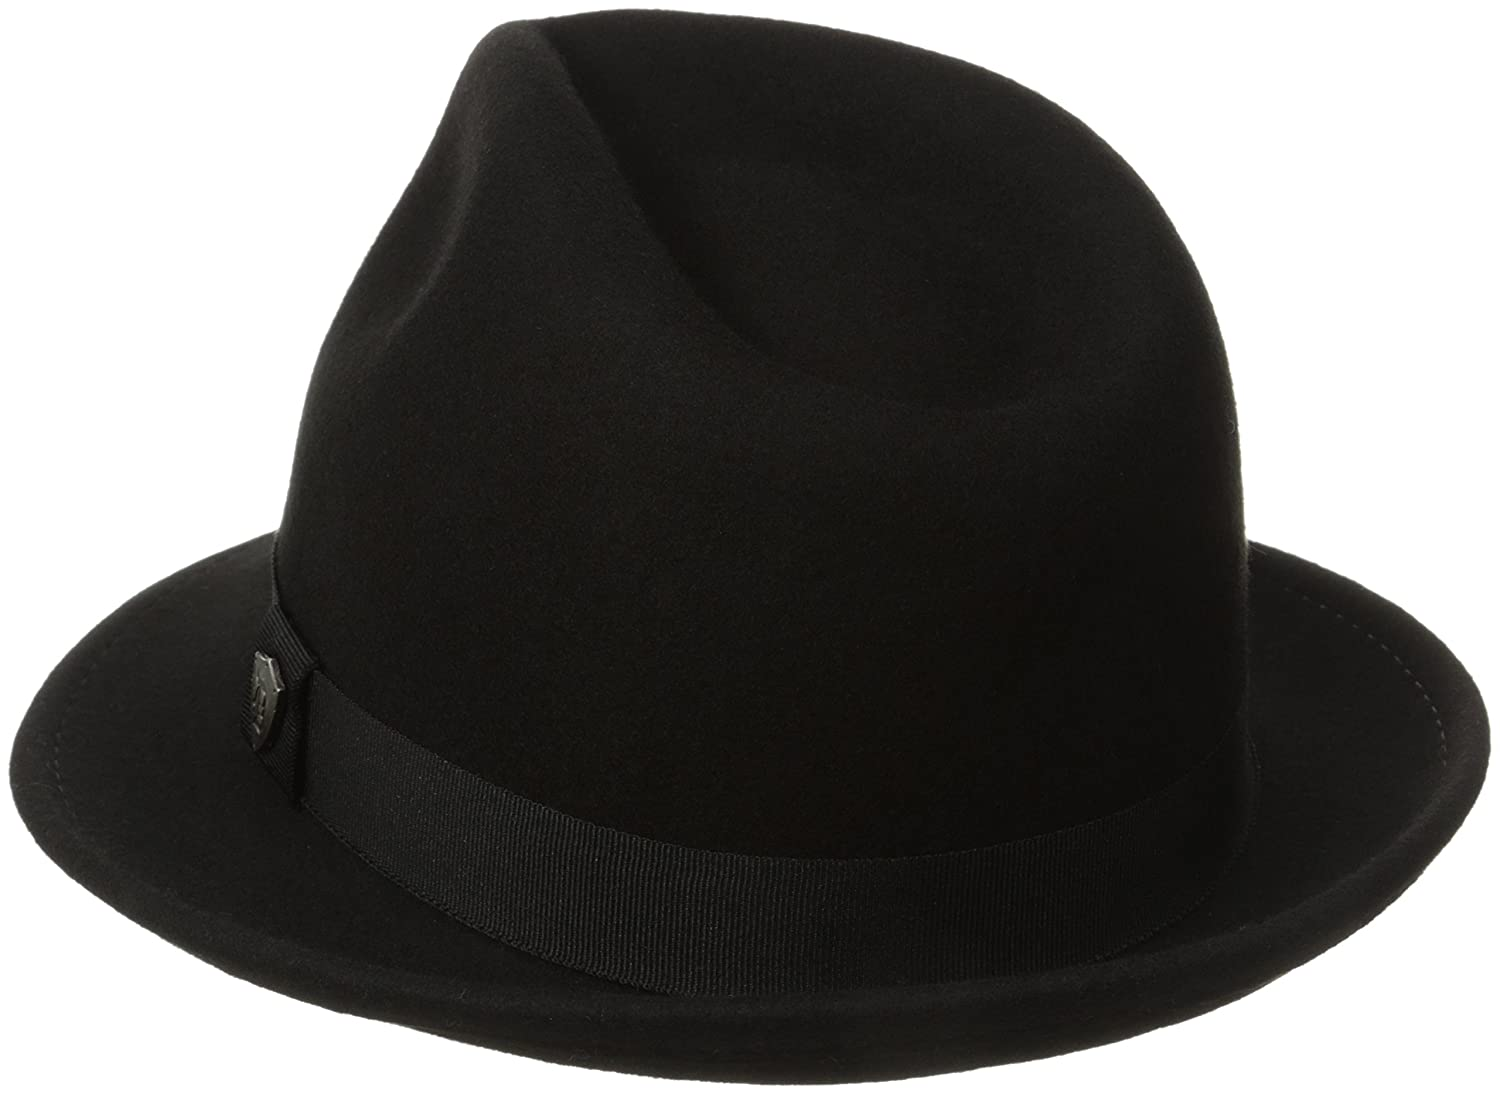 1940s Style Mens Hats Dorfman Pacific Mens Wool Felt Hat $44.95 AT vintagedancer.com